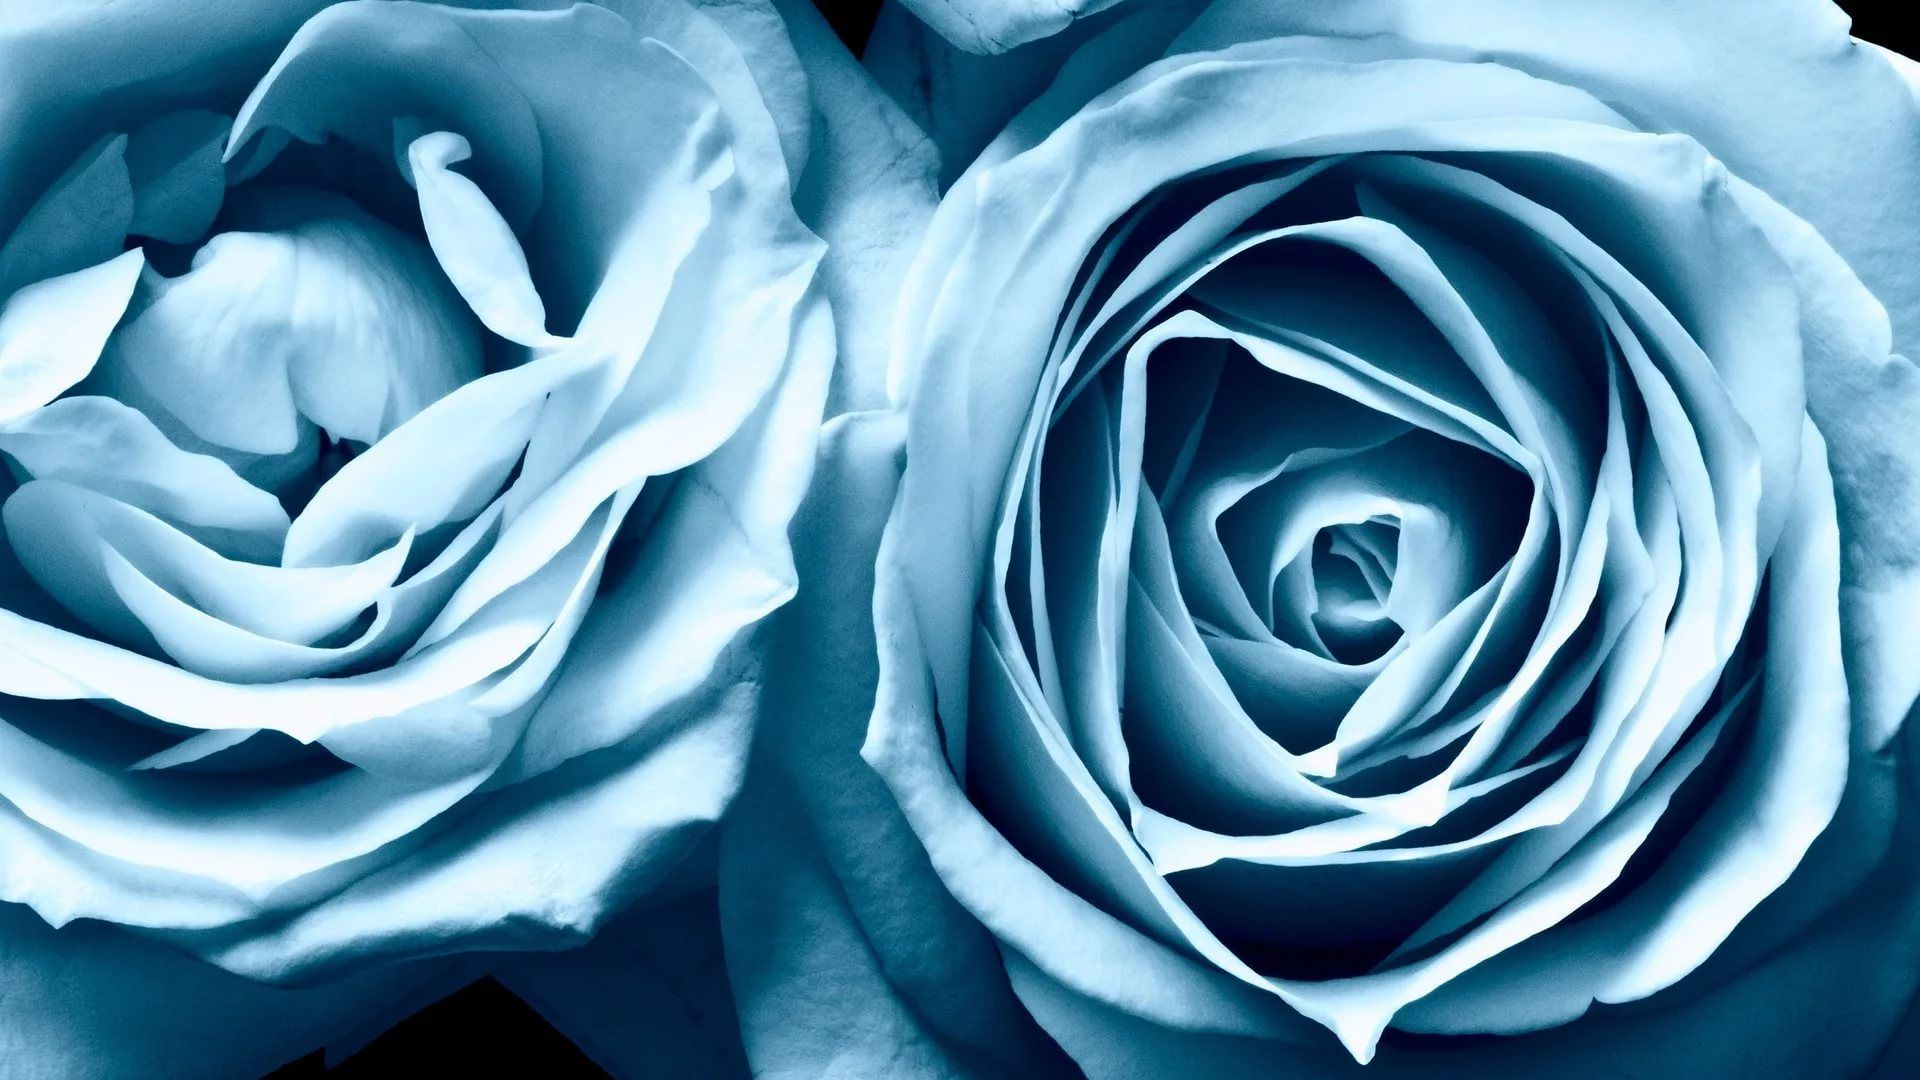 Blue Rose wallpaper and themes